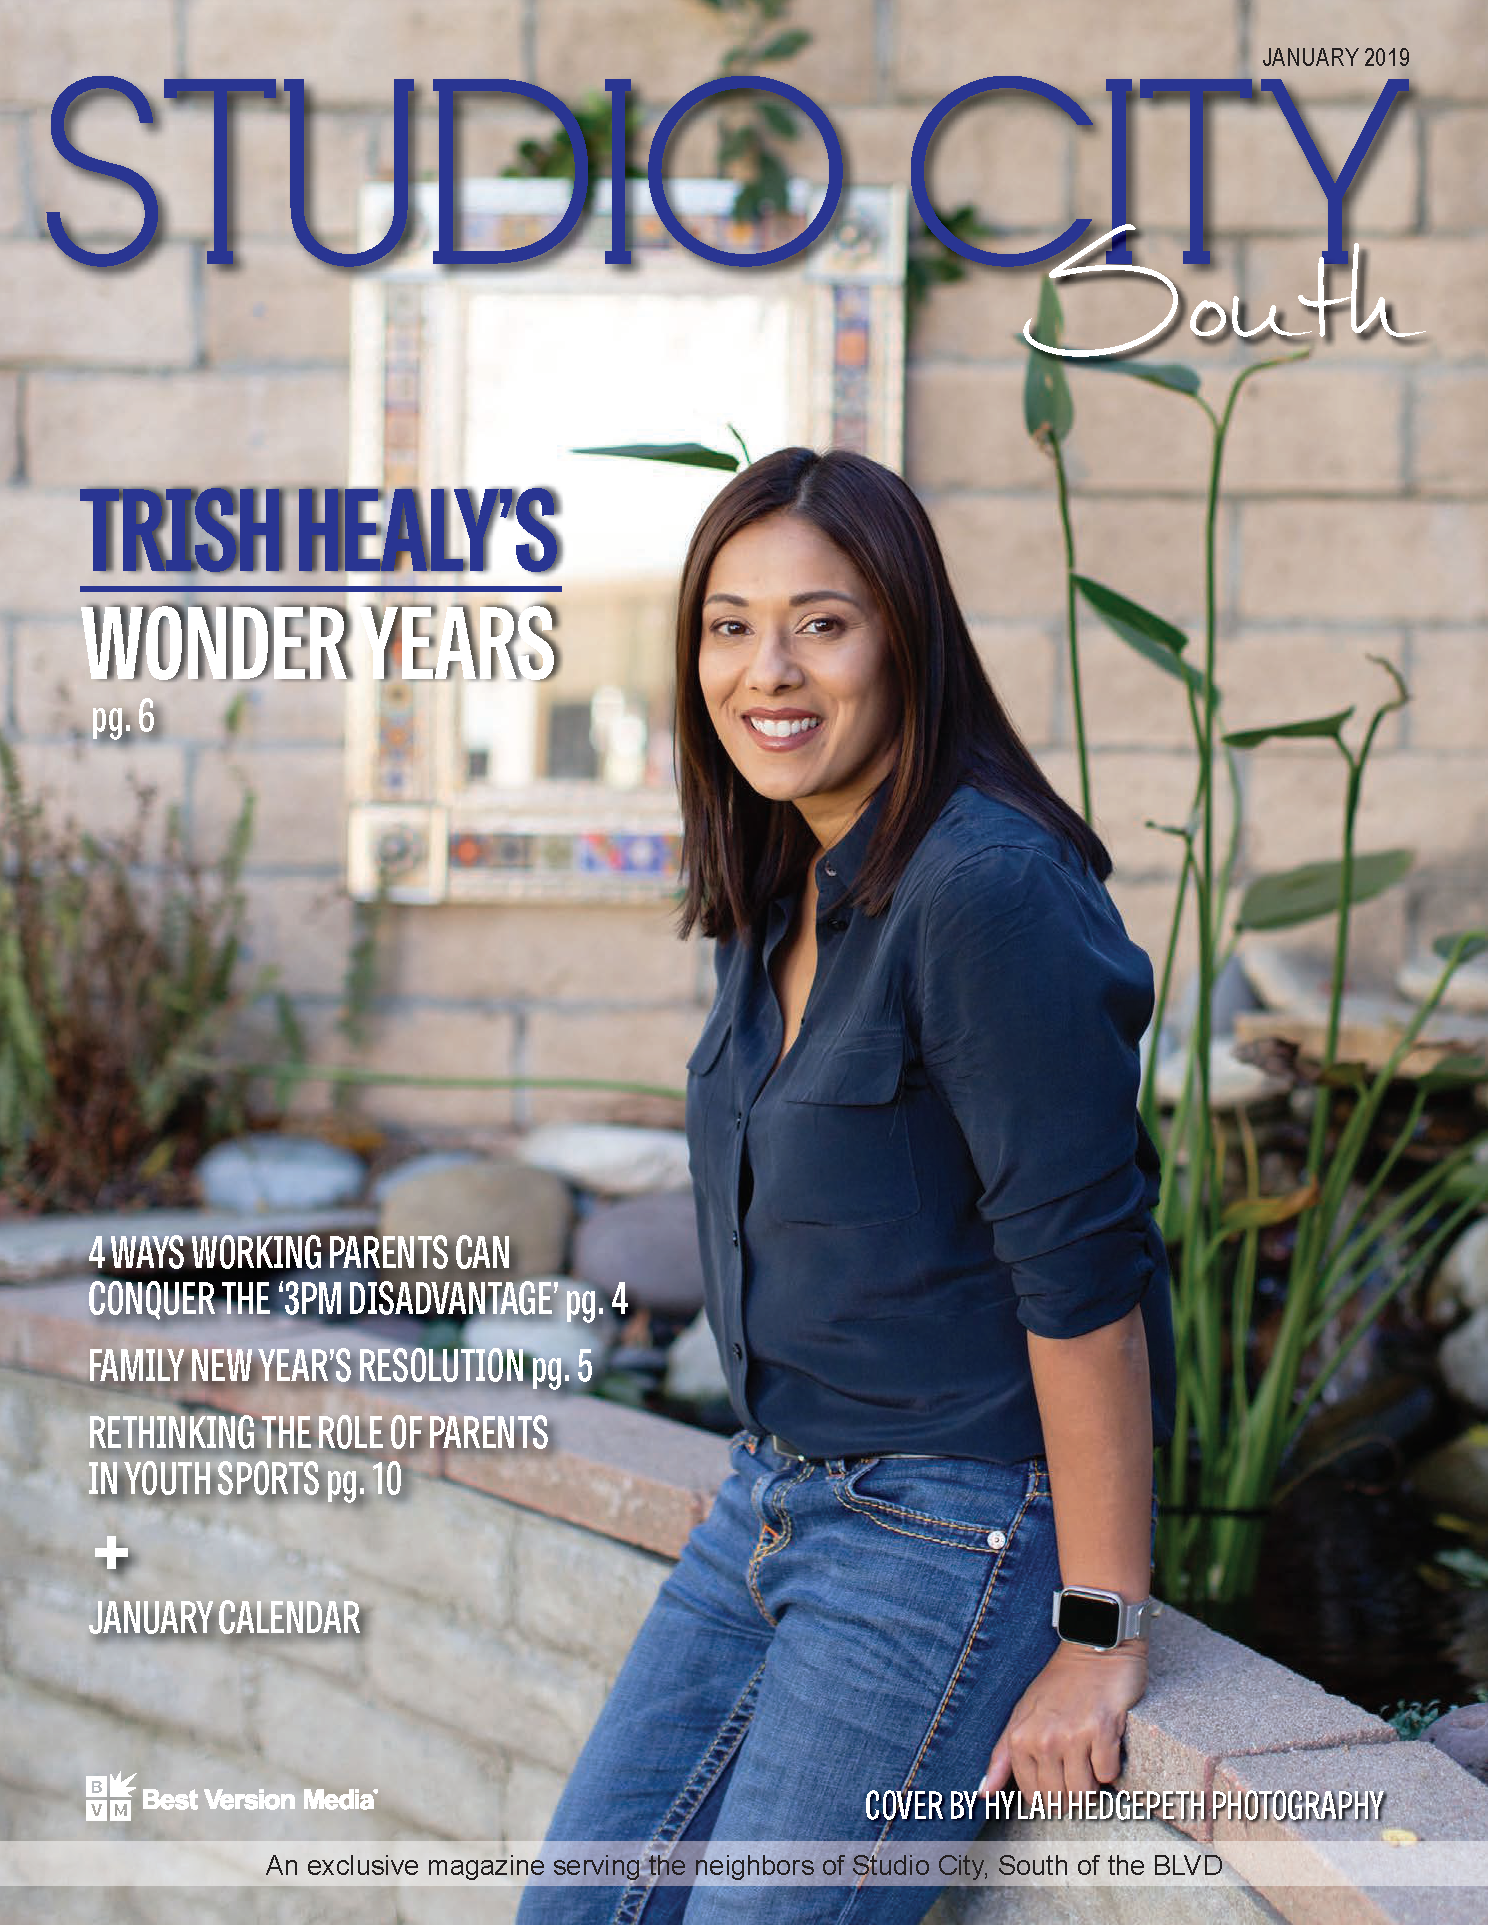 Cover story in studio city south magazine - CLICK TO VIEW